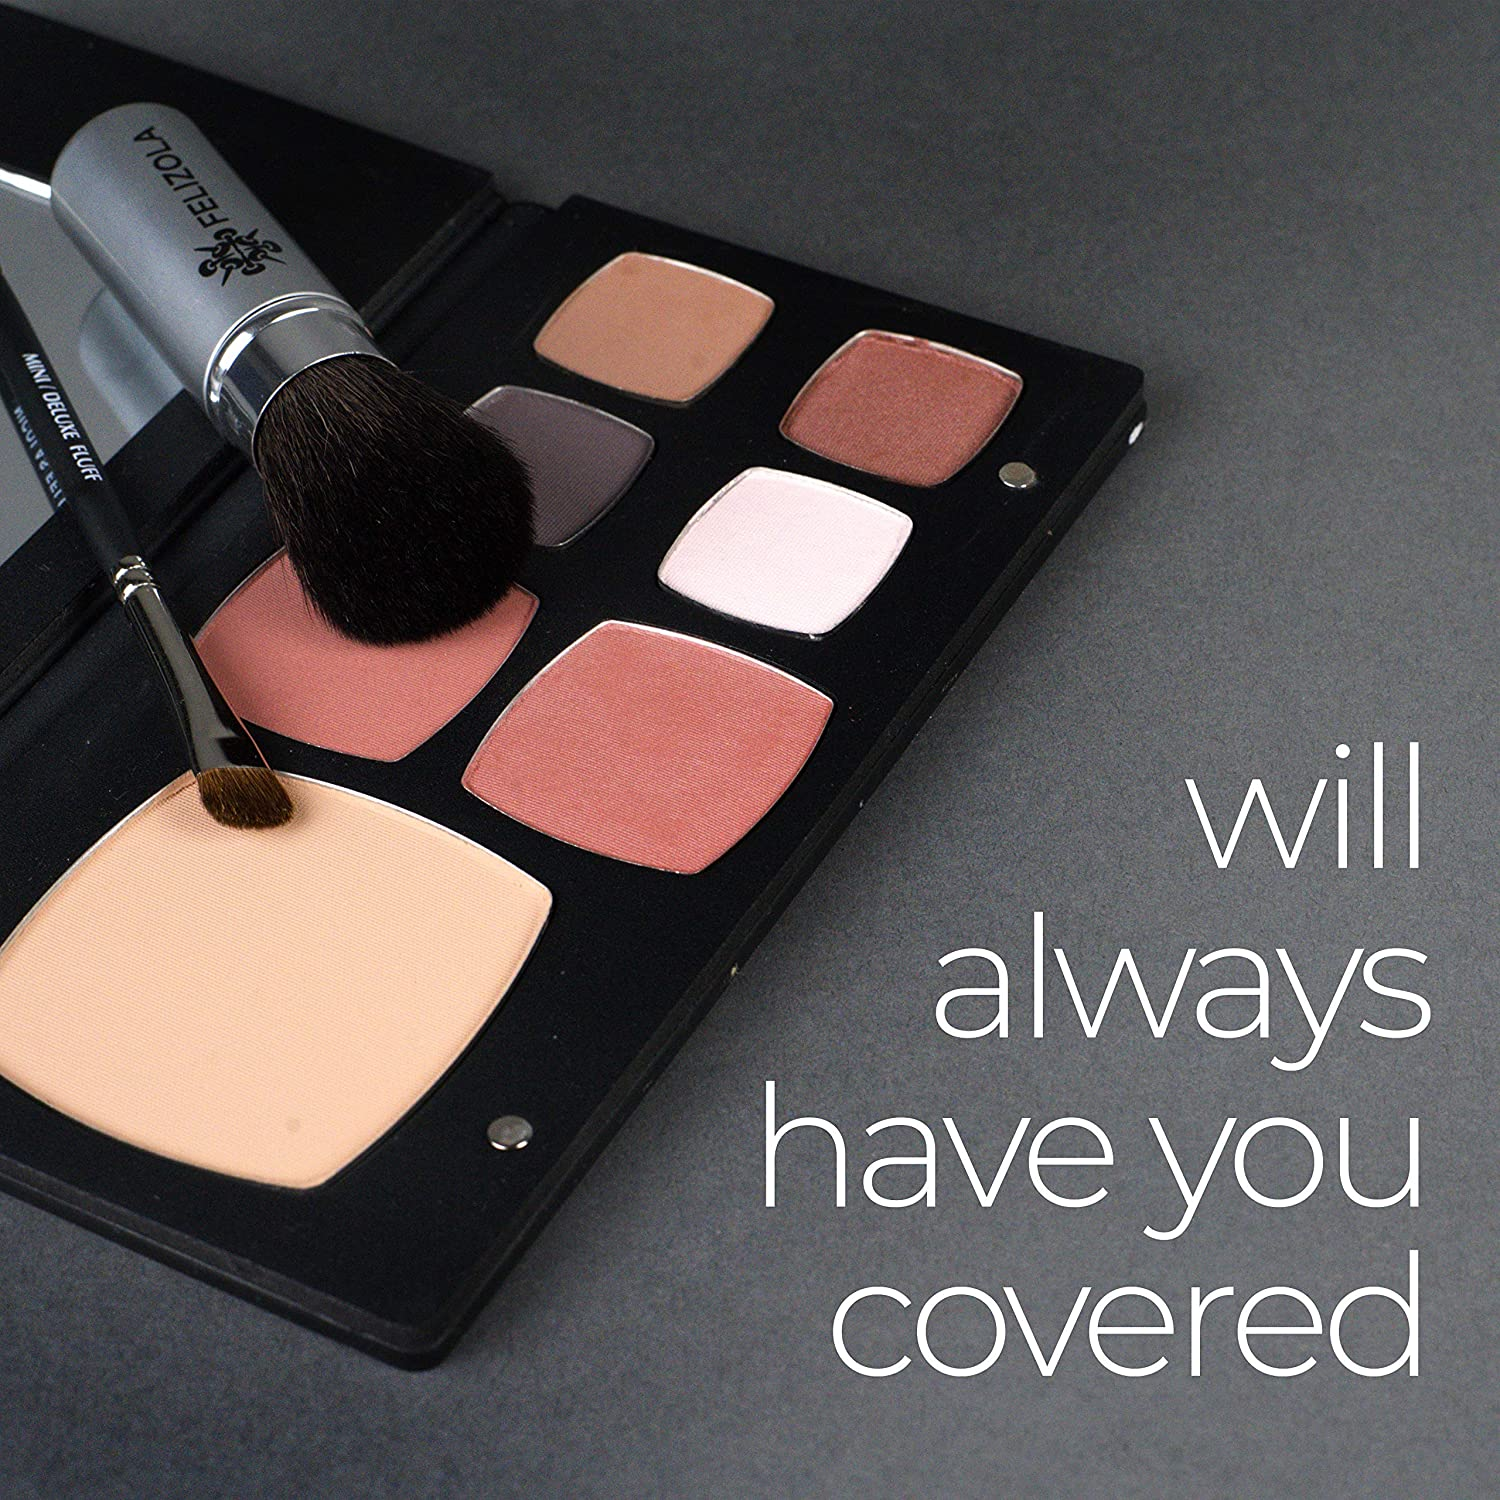 Mineral Makeup Palette Kit Includes 4 gorgeous mineral eyeshadows that cling to eyelids and won't crease, fade or weigh down eyes.